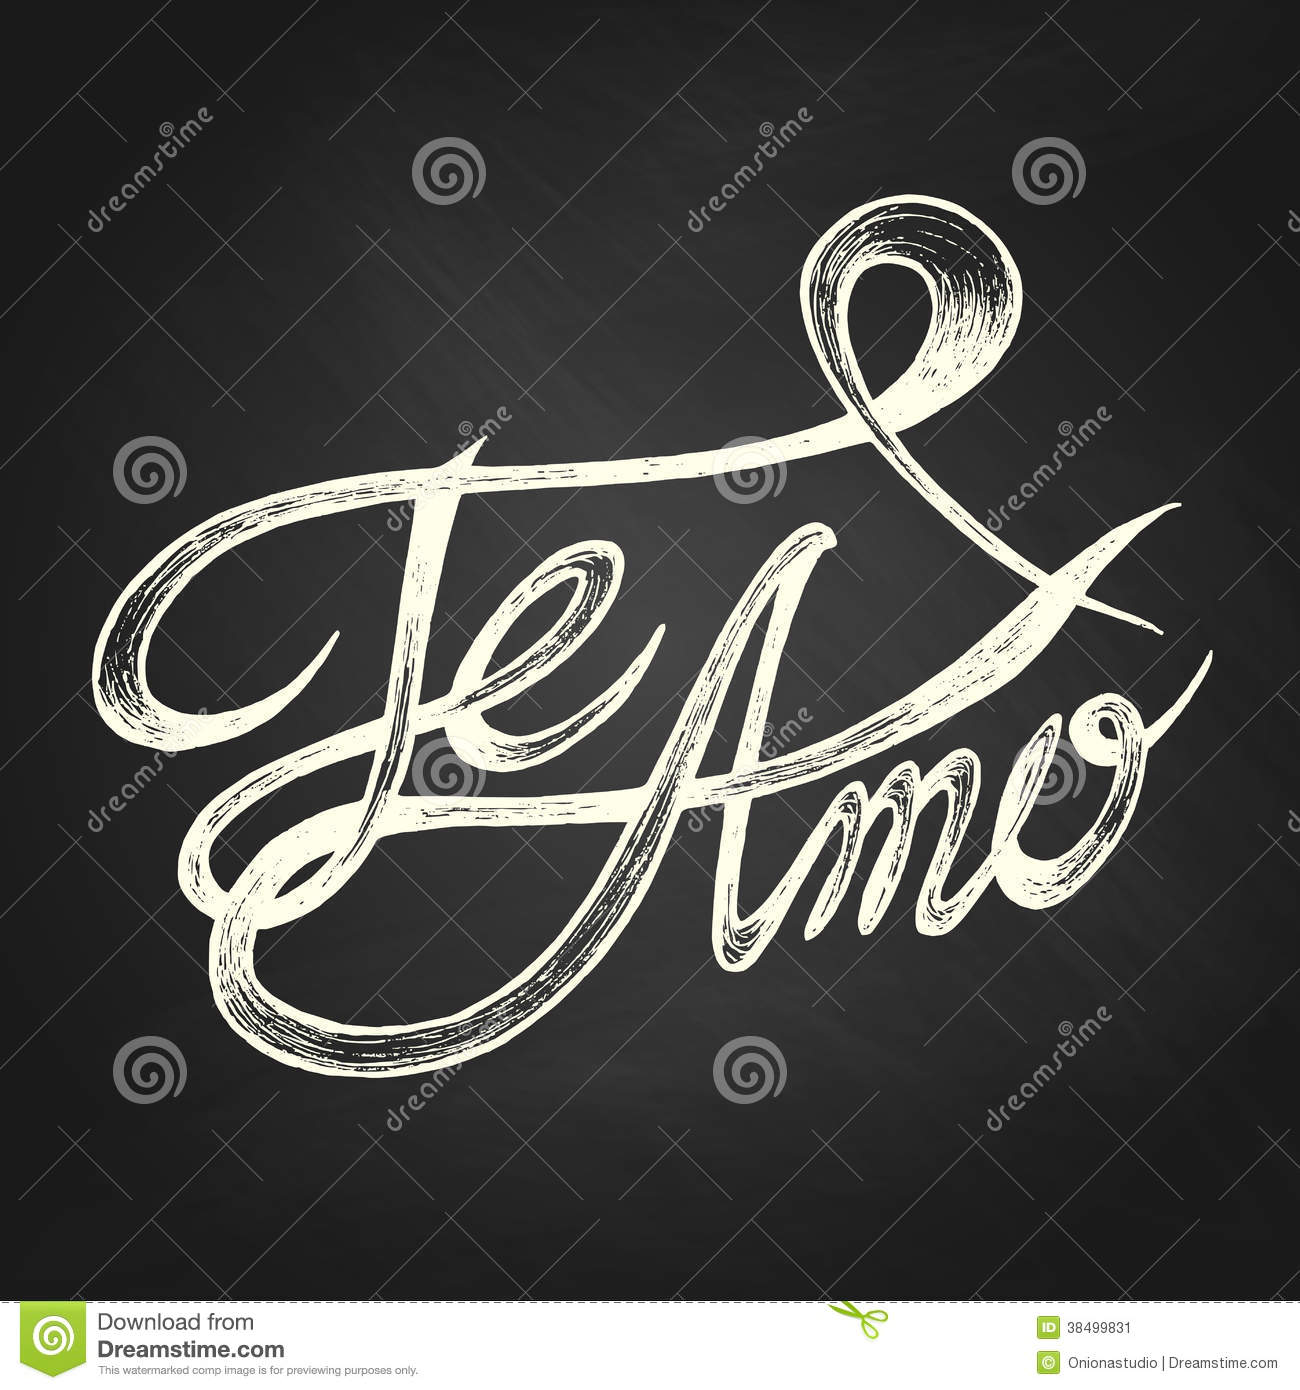 Te Amo – Free Coloring Pages